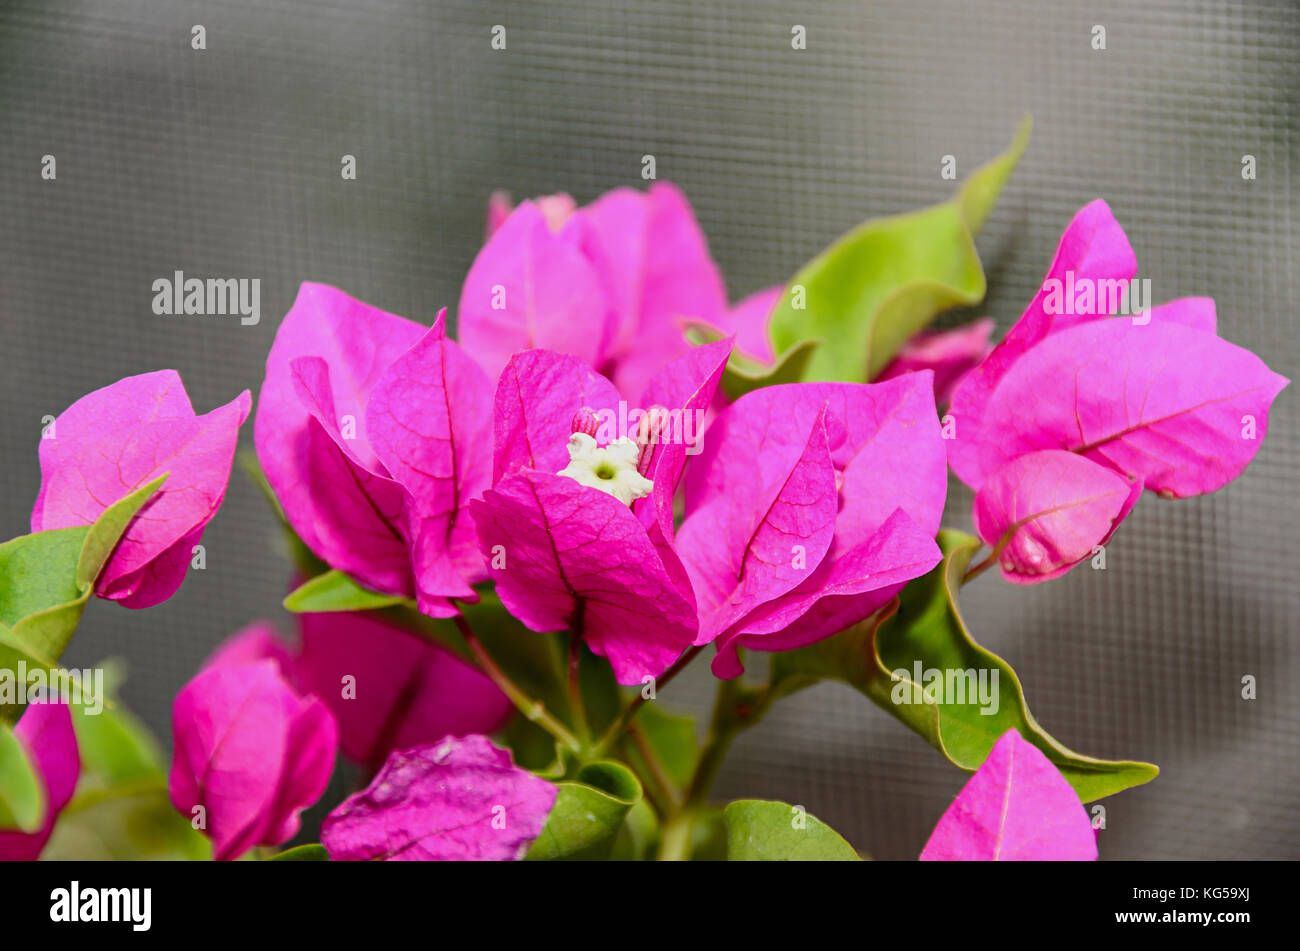 Bougainvillea Pink Branch Flowers Paper Flower With Green Leafs